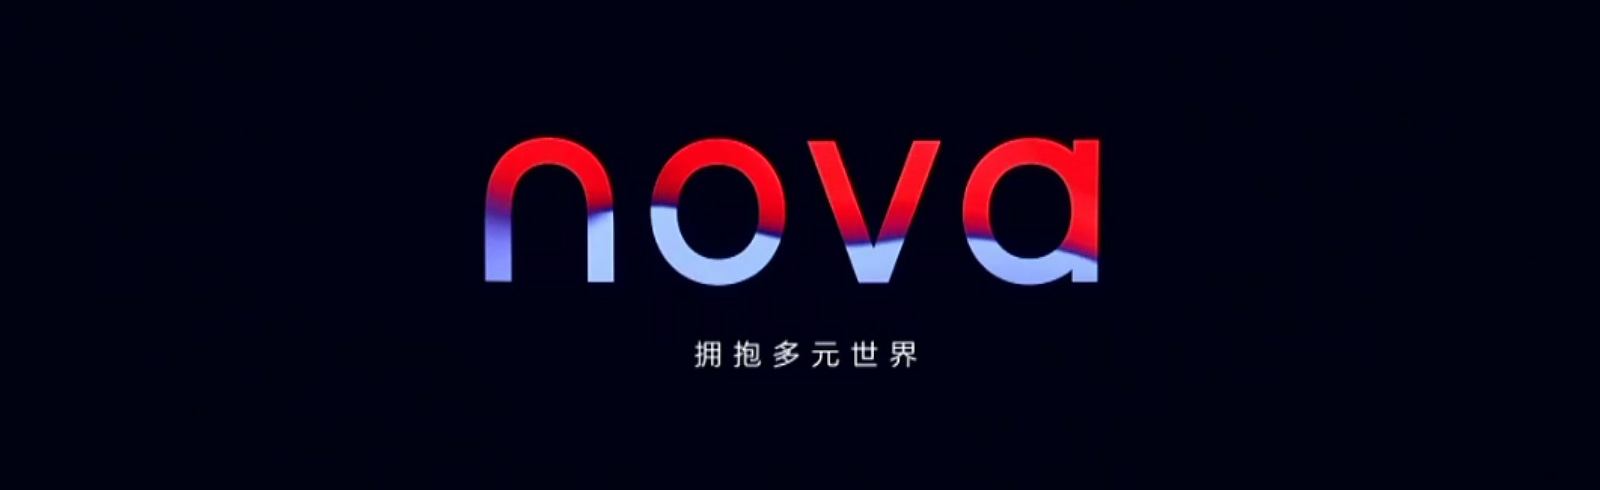 Huawei unveils the nova 5 series of smartphones and the Kirin 810 chipset